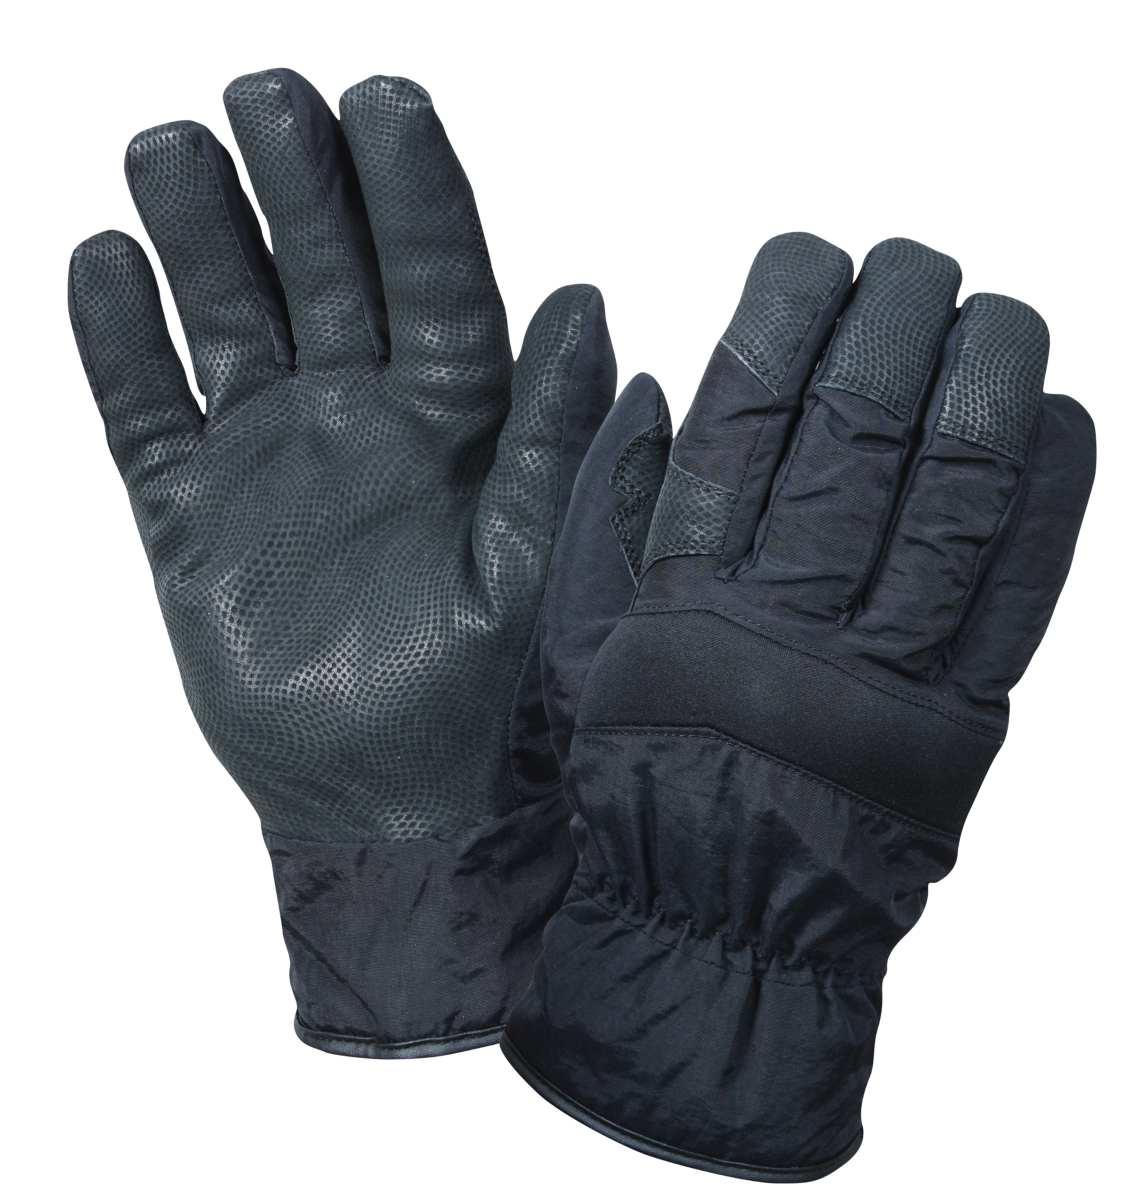 Black Cold Weather Insulated Gloves with Leather Palm for Gripping, Black